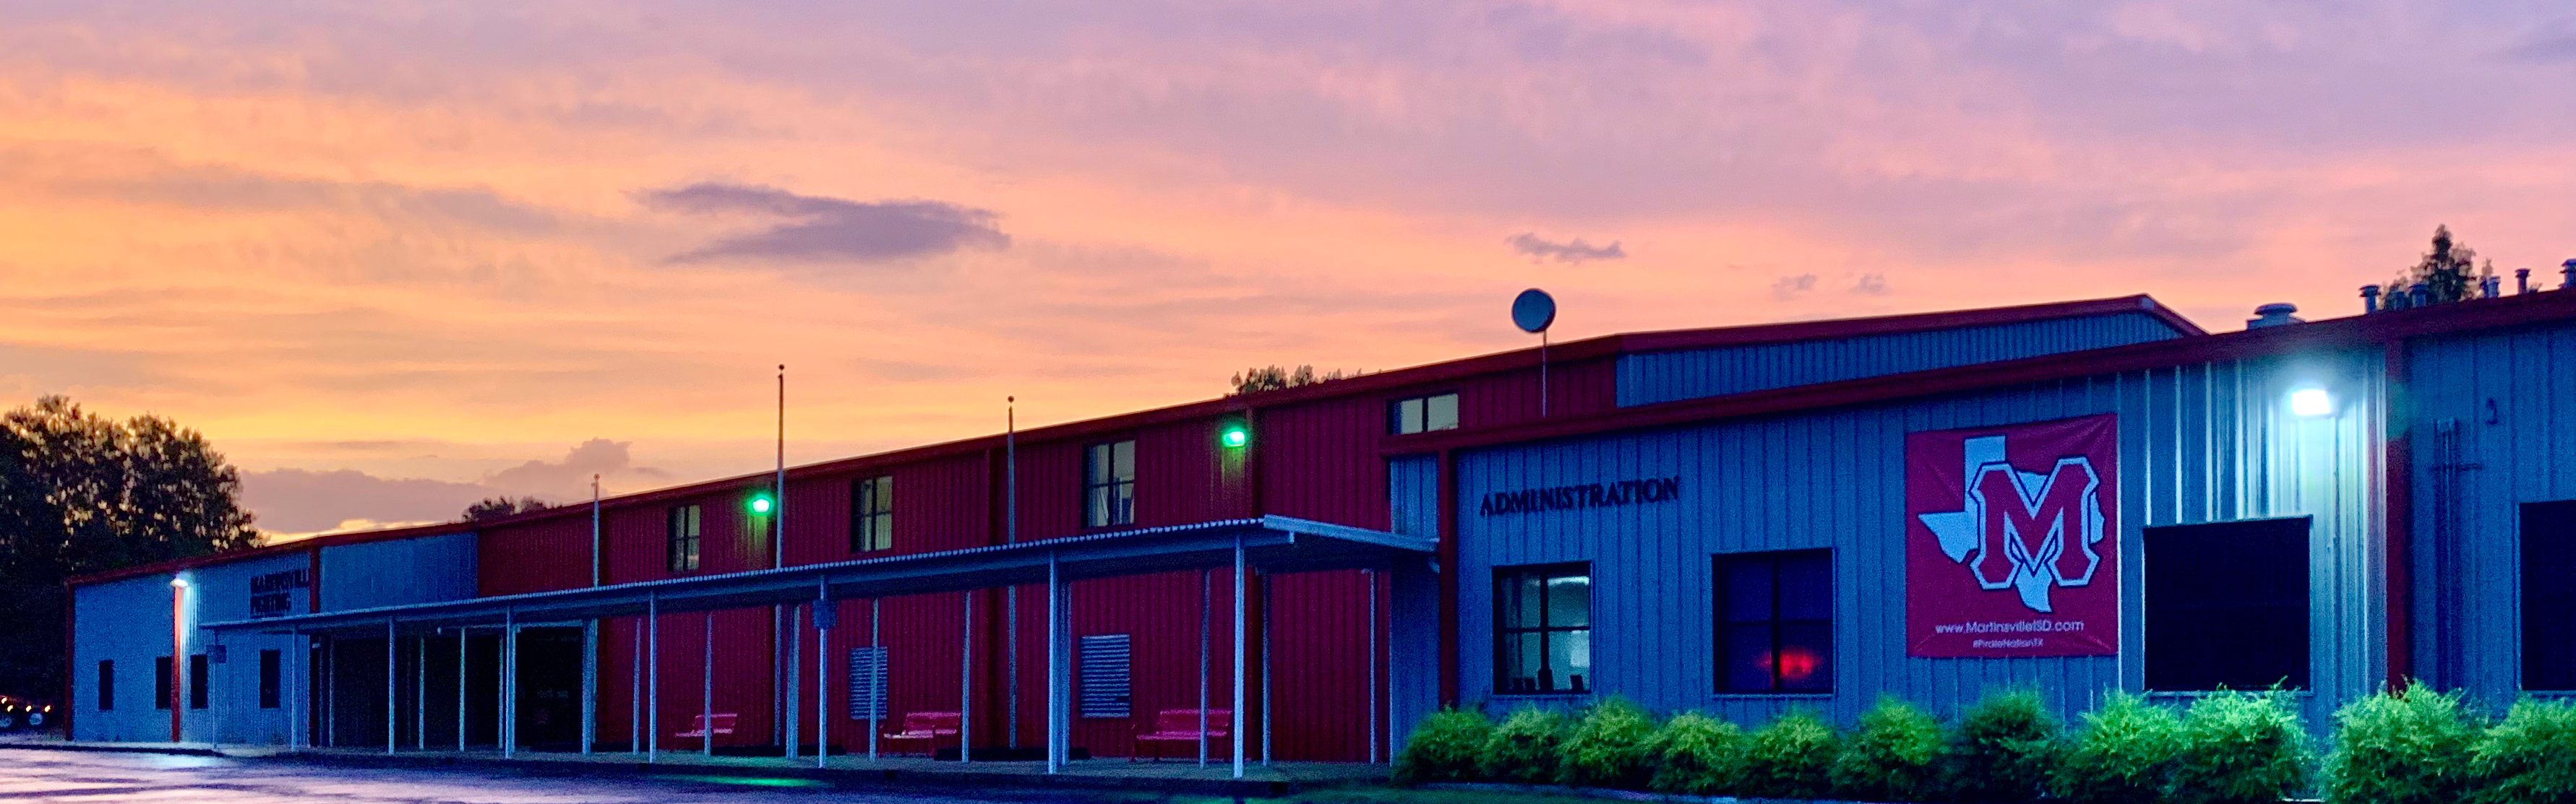 School building with sunrise in the background